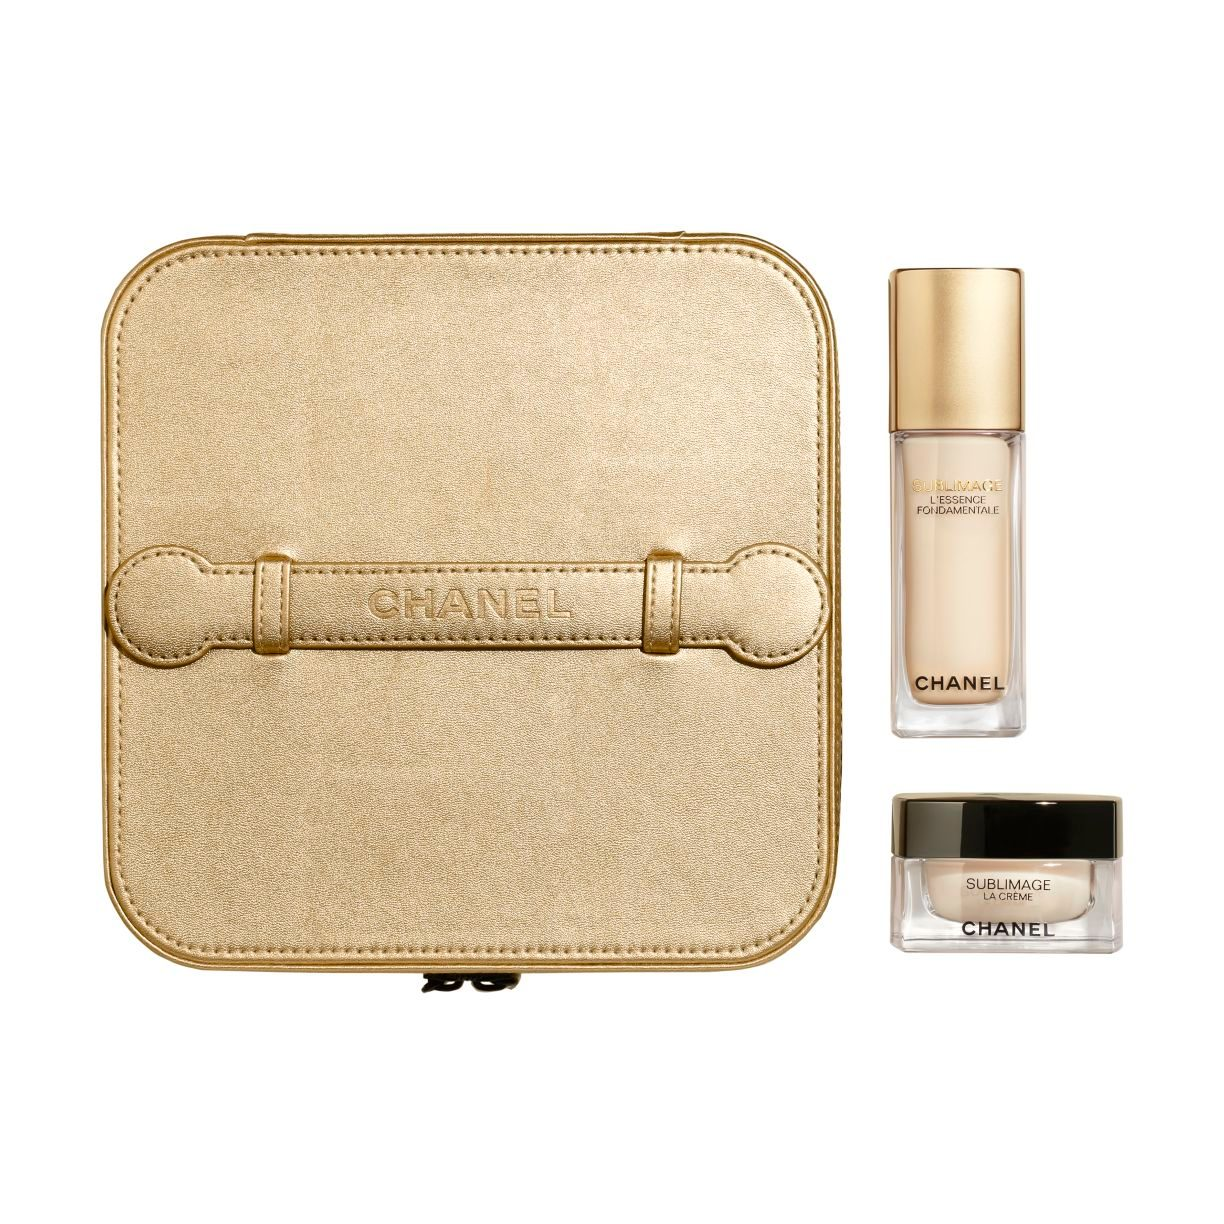 SUBLIMAGE LE COFFRET L'ESSENCE FONDAMENTALE - LA CRÈME